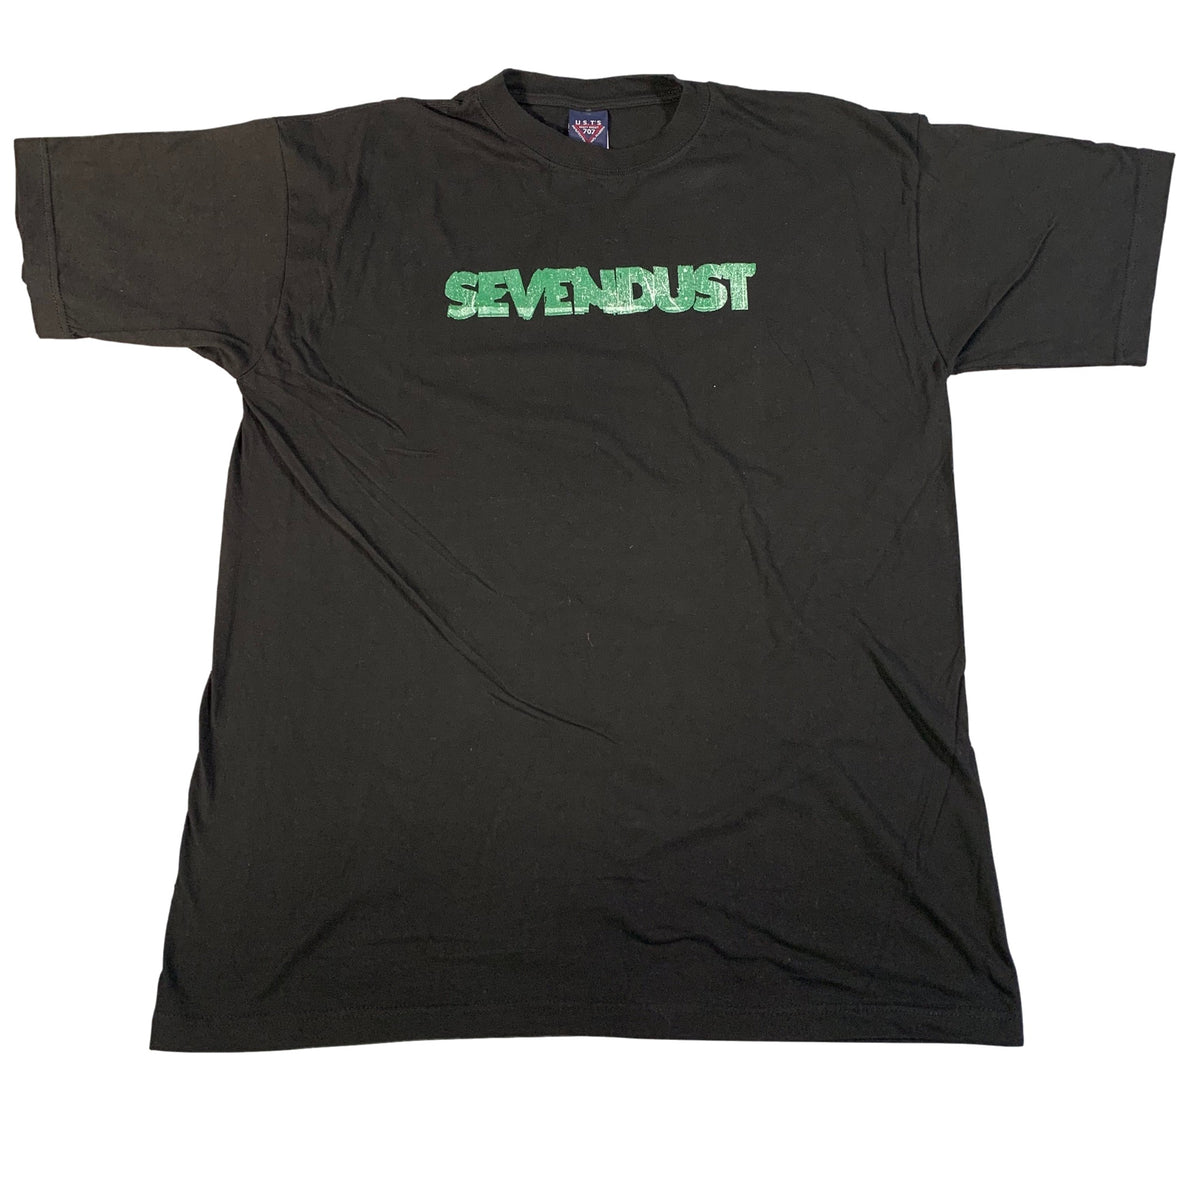 "Vintage Sevendust ""Seasons"" T-Shirt"